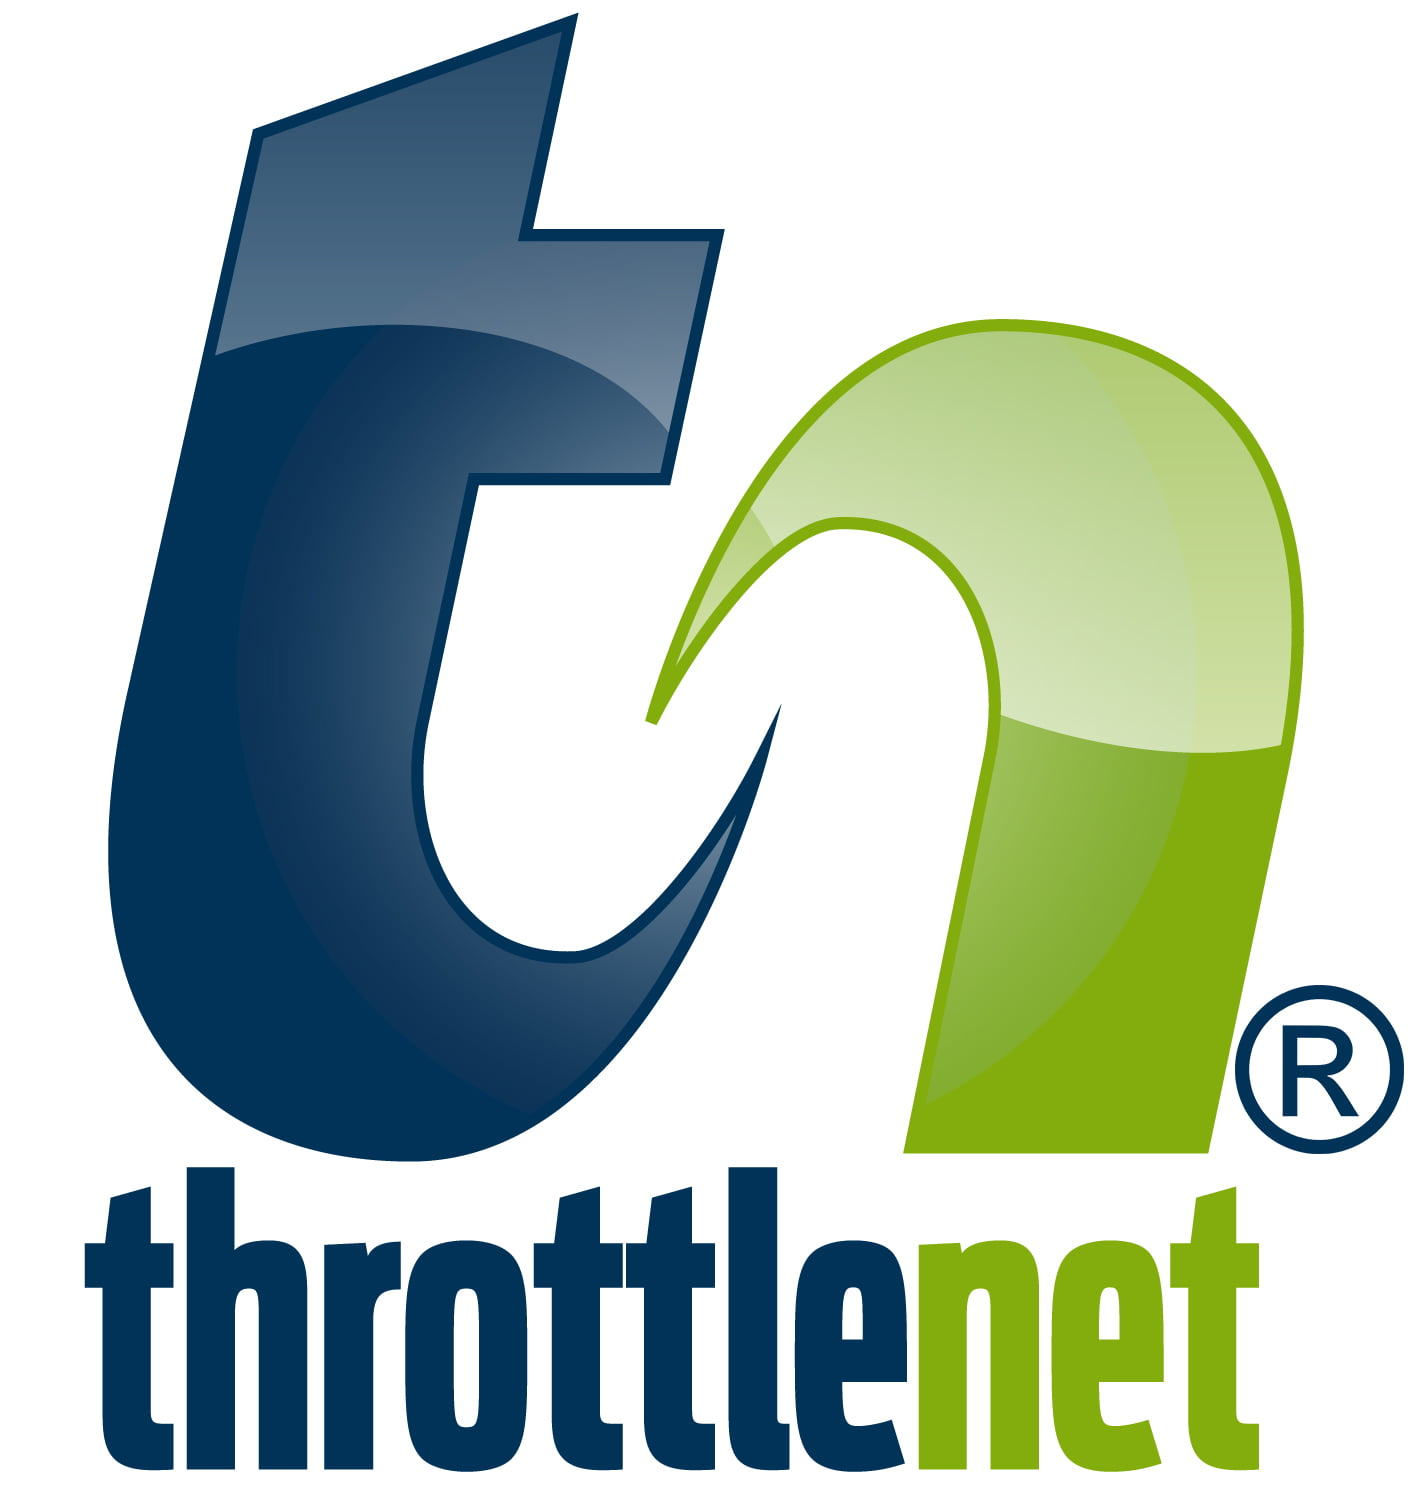 ThrottleNet Once Again Named #1 IT Firm in St. Louis by Small Business Monthly